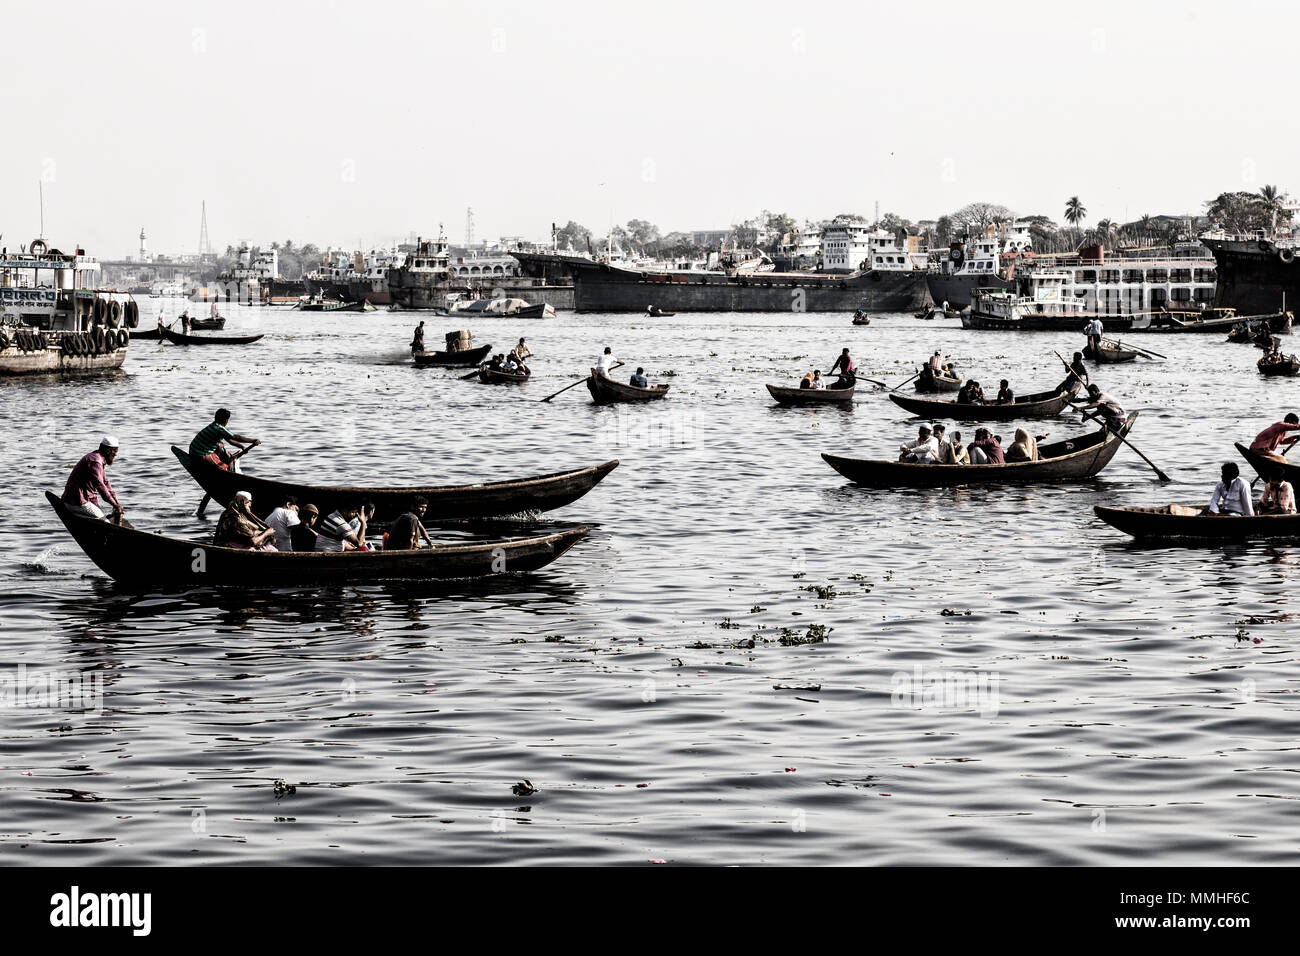 Dhaka, Bangladesh, February 24 2017: Small rowboats serve as taxi between the two river banks on the Buriganga River in Dhaka Bangladesh (Vintage Phot - Stock Image